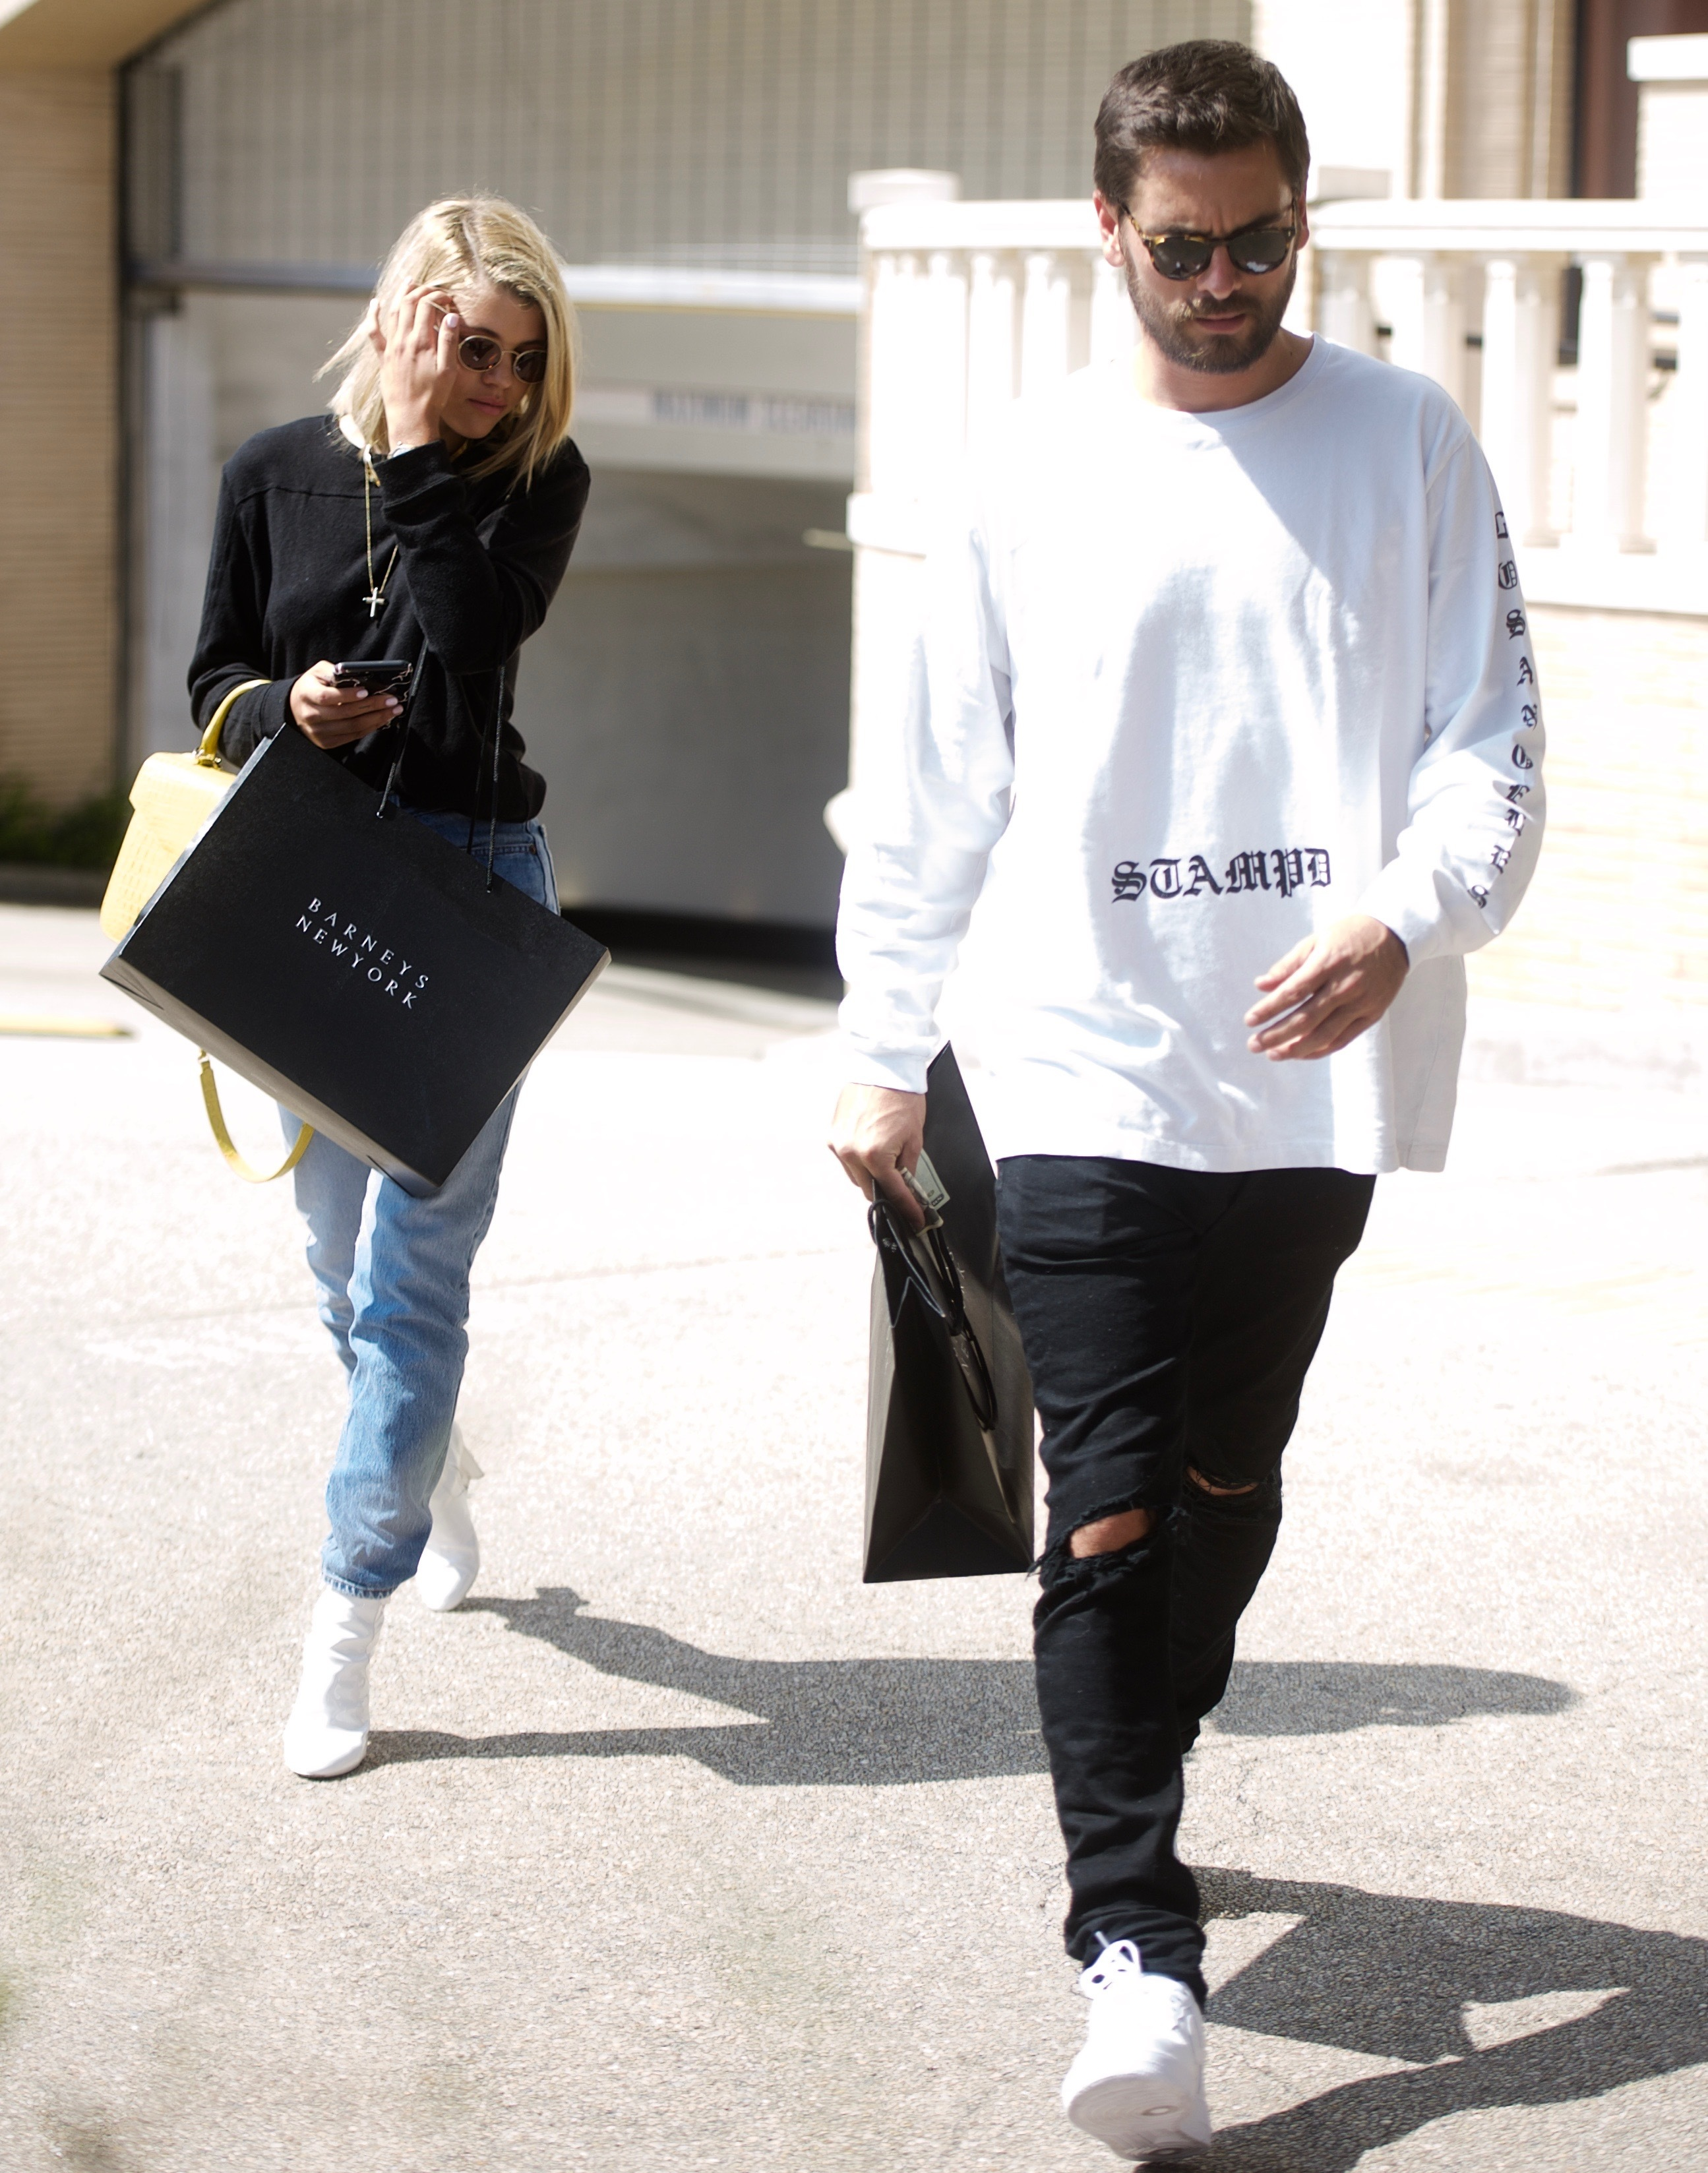 Sofia Richie and Scott Disick are seen leaving from shopping at Barney's NYC in Beverly Hills, Los Angeles on Sept. 14, 2017.